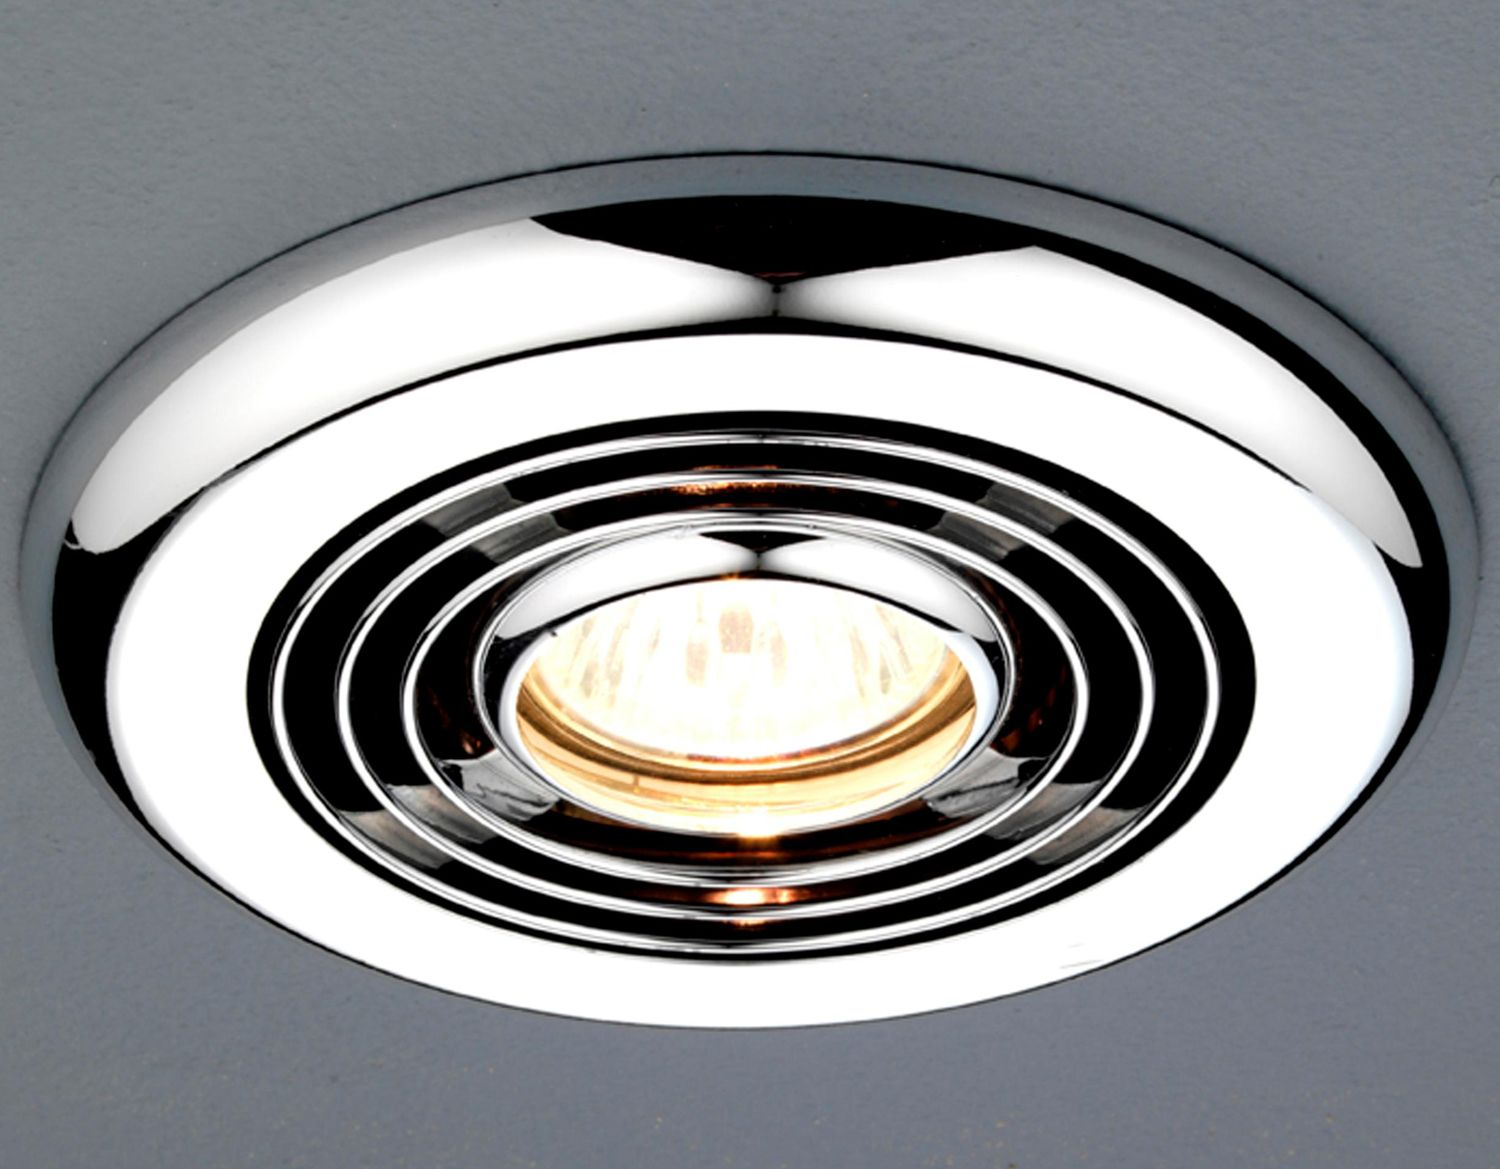 Extractor fan bathroom ceiling mounted choosing bathroom for 8 bathroom extractor fan